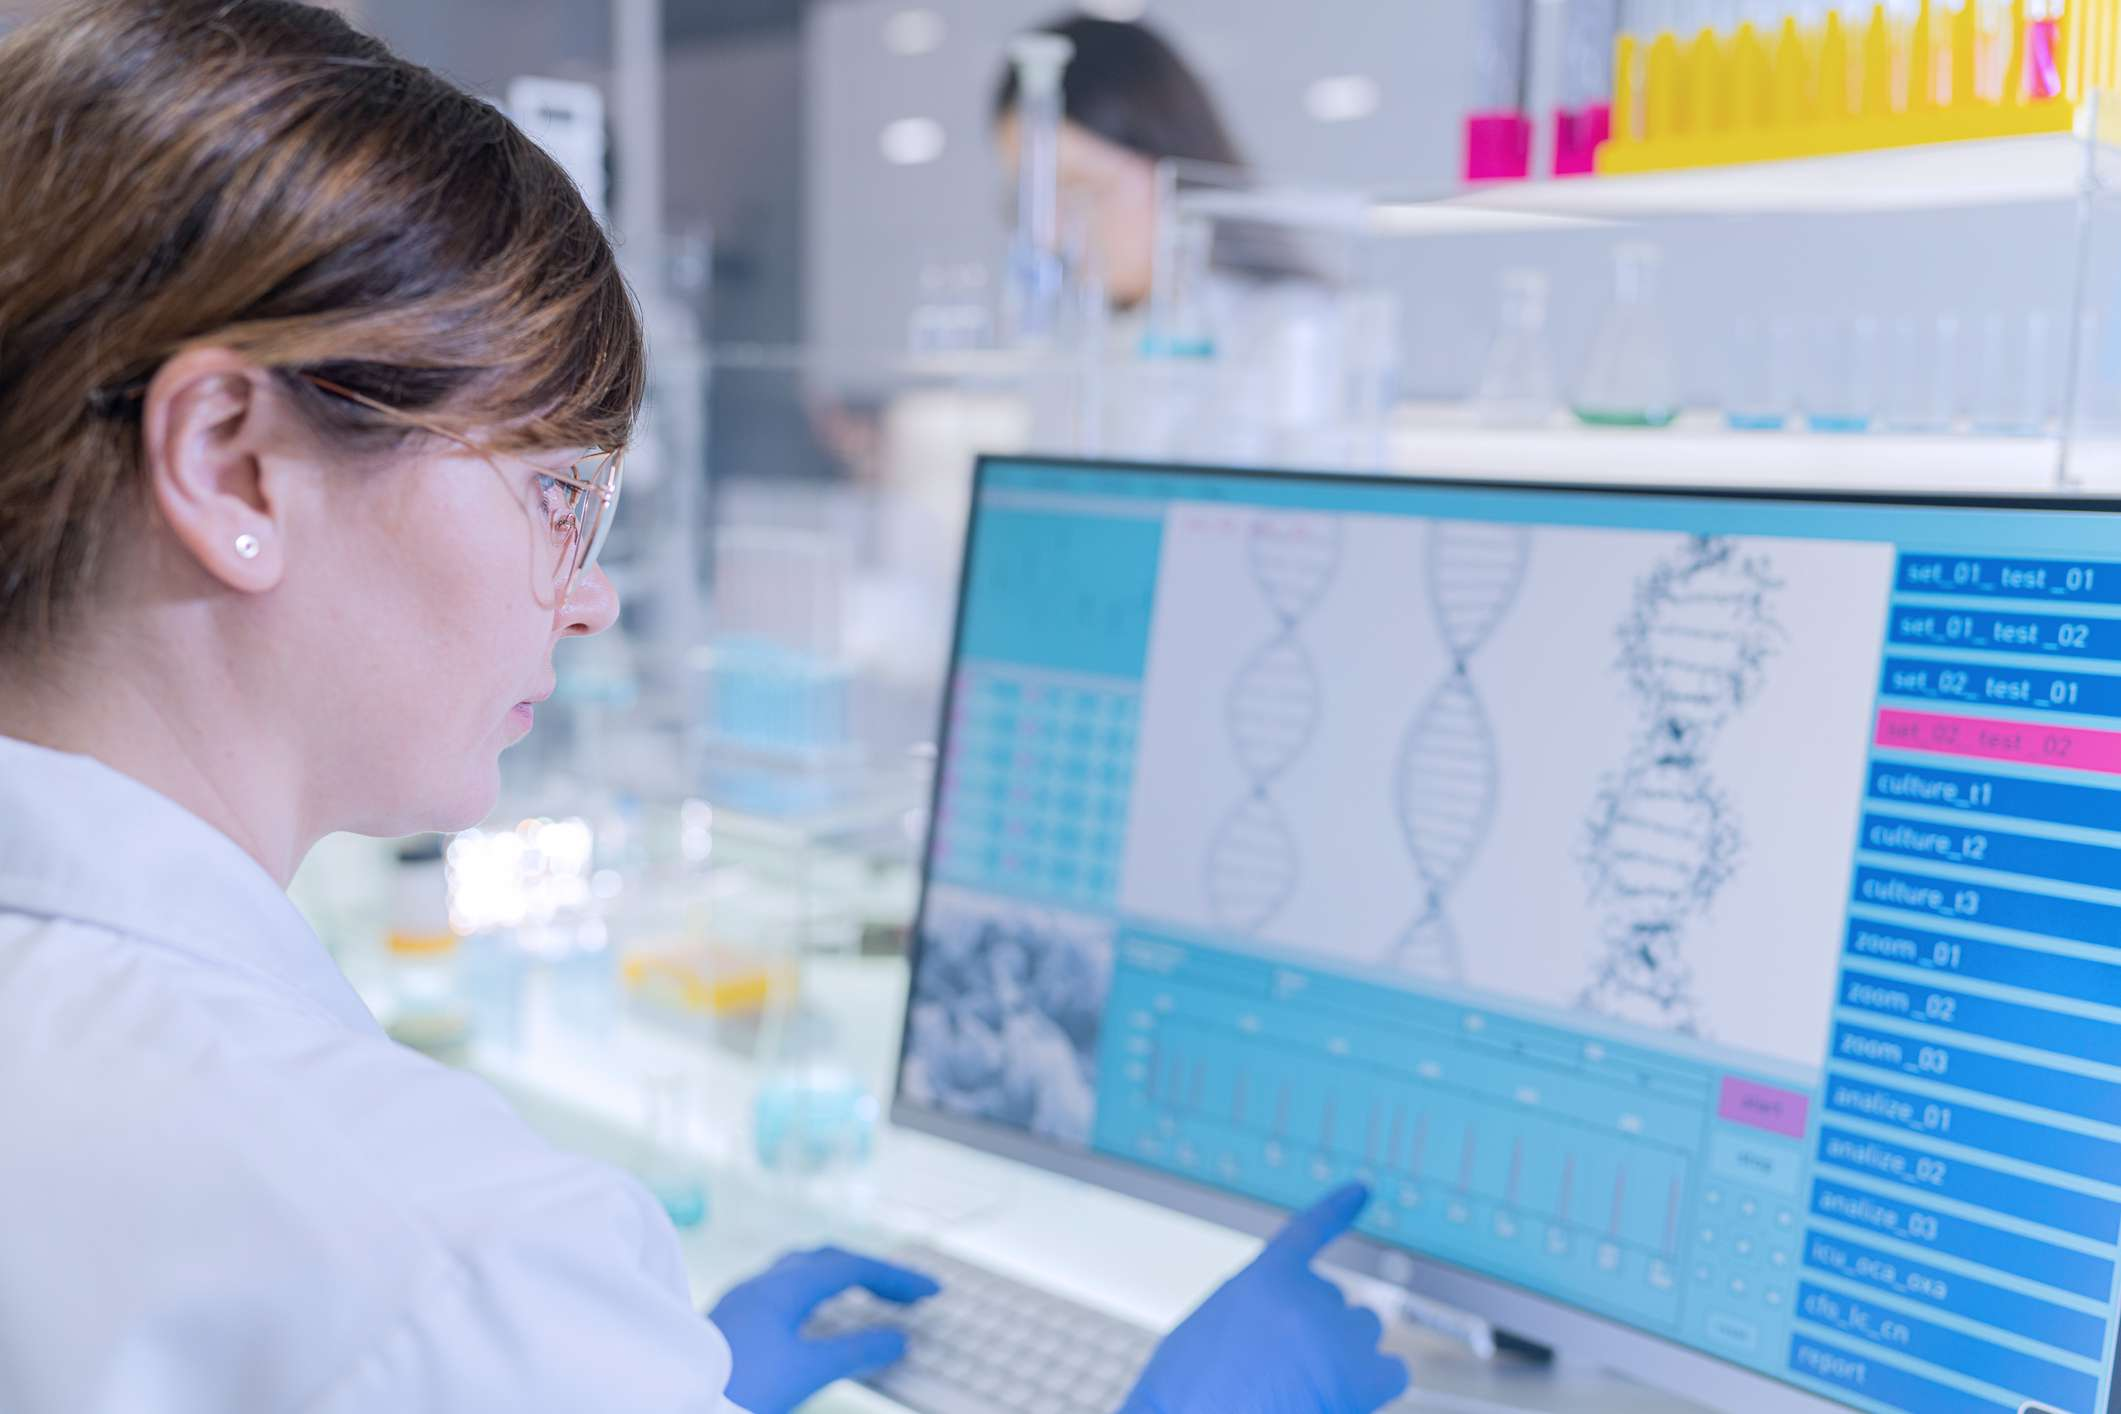 Female research team studying DNA samples. Computer screens with DNA helix in foreground